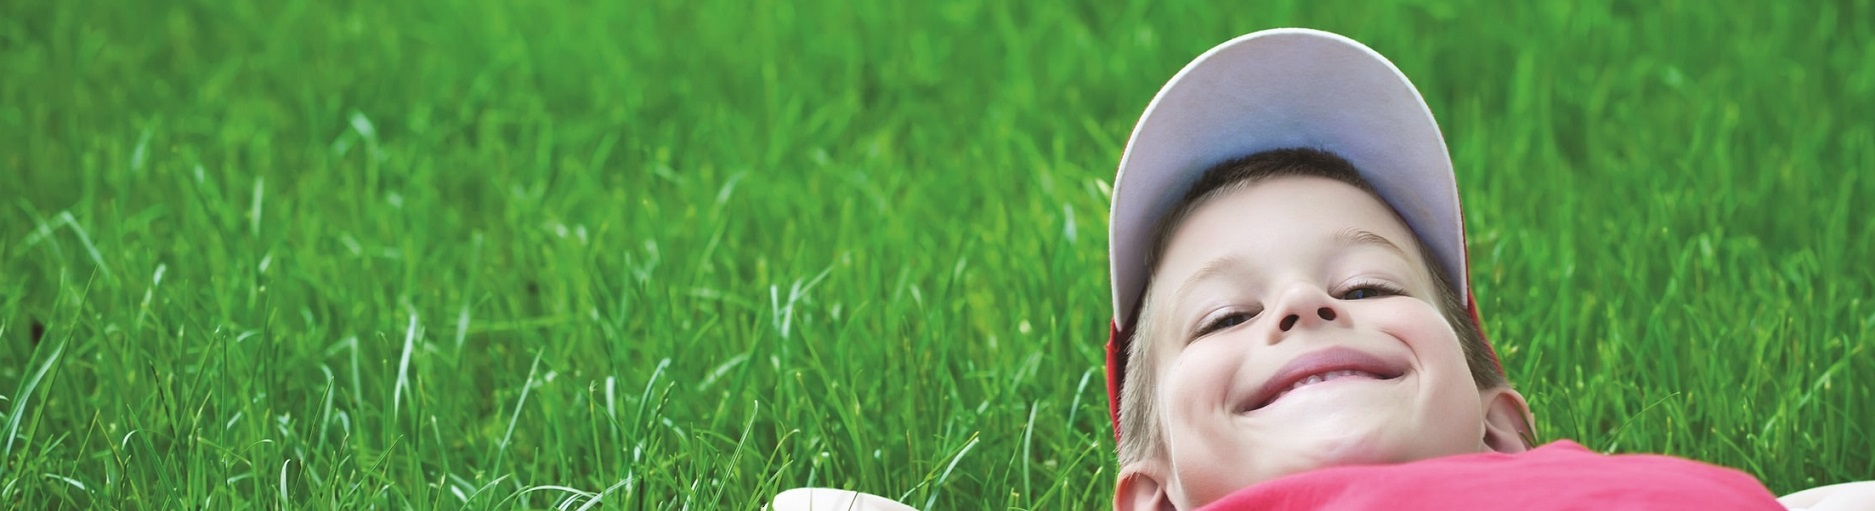 Smart Irrigation Month - Boy in Grass